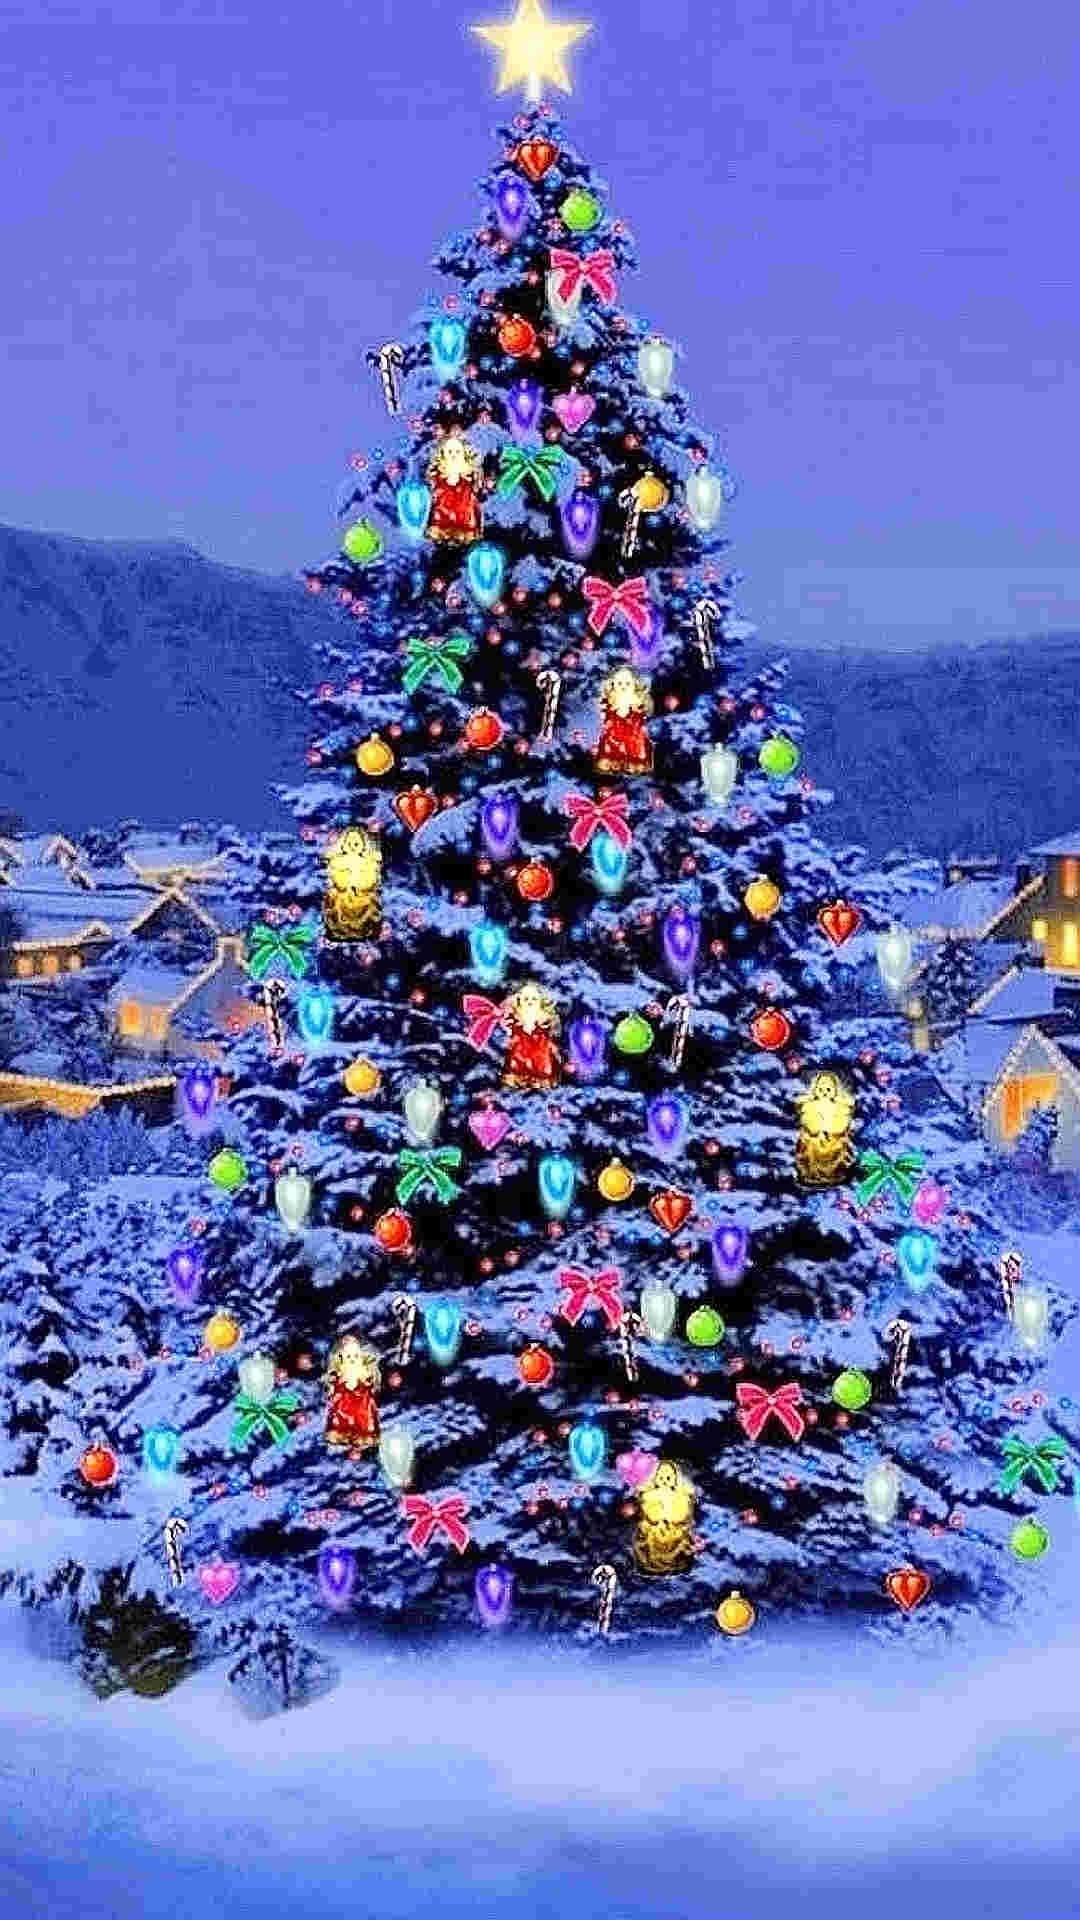 Bling Bling Christmas Tree With Star Iphone 6 Plus - Christmas Tree Background Iphone - HD Wallpaper